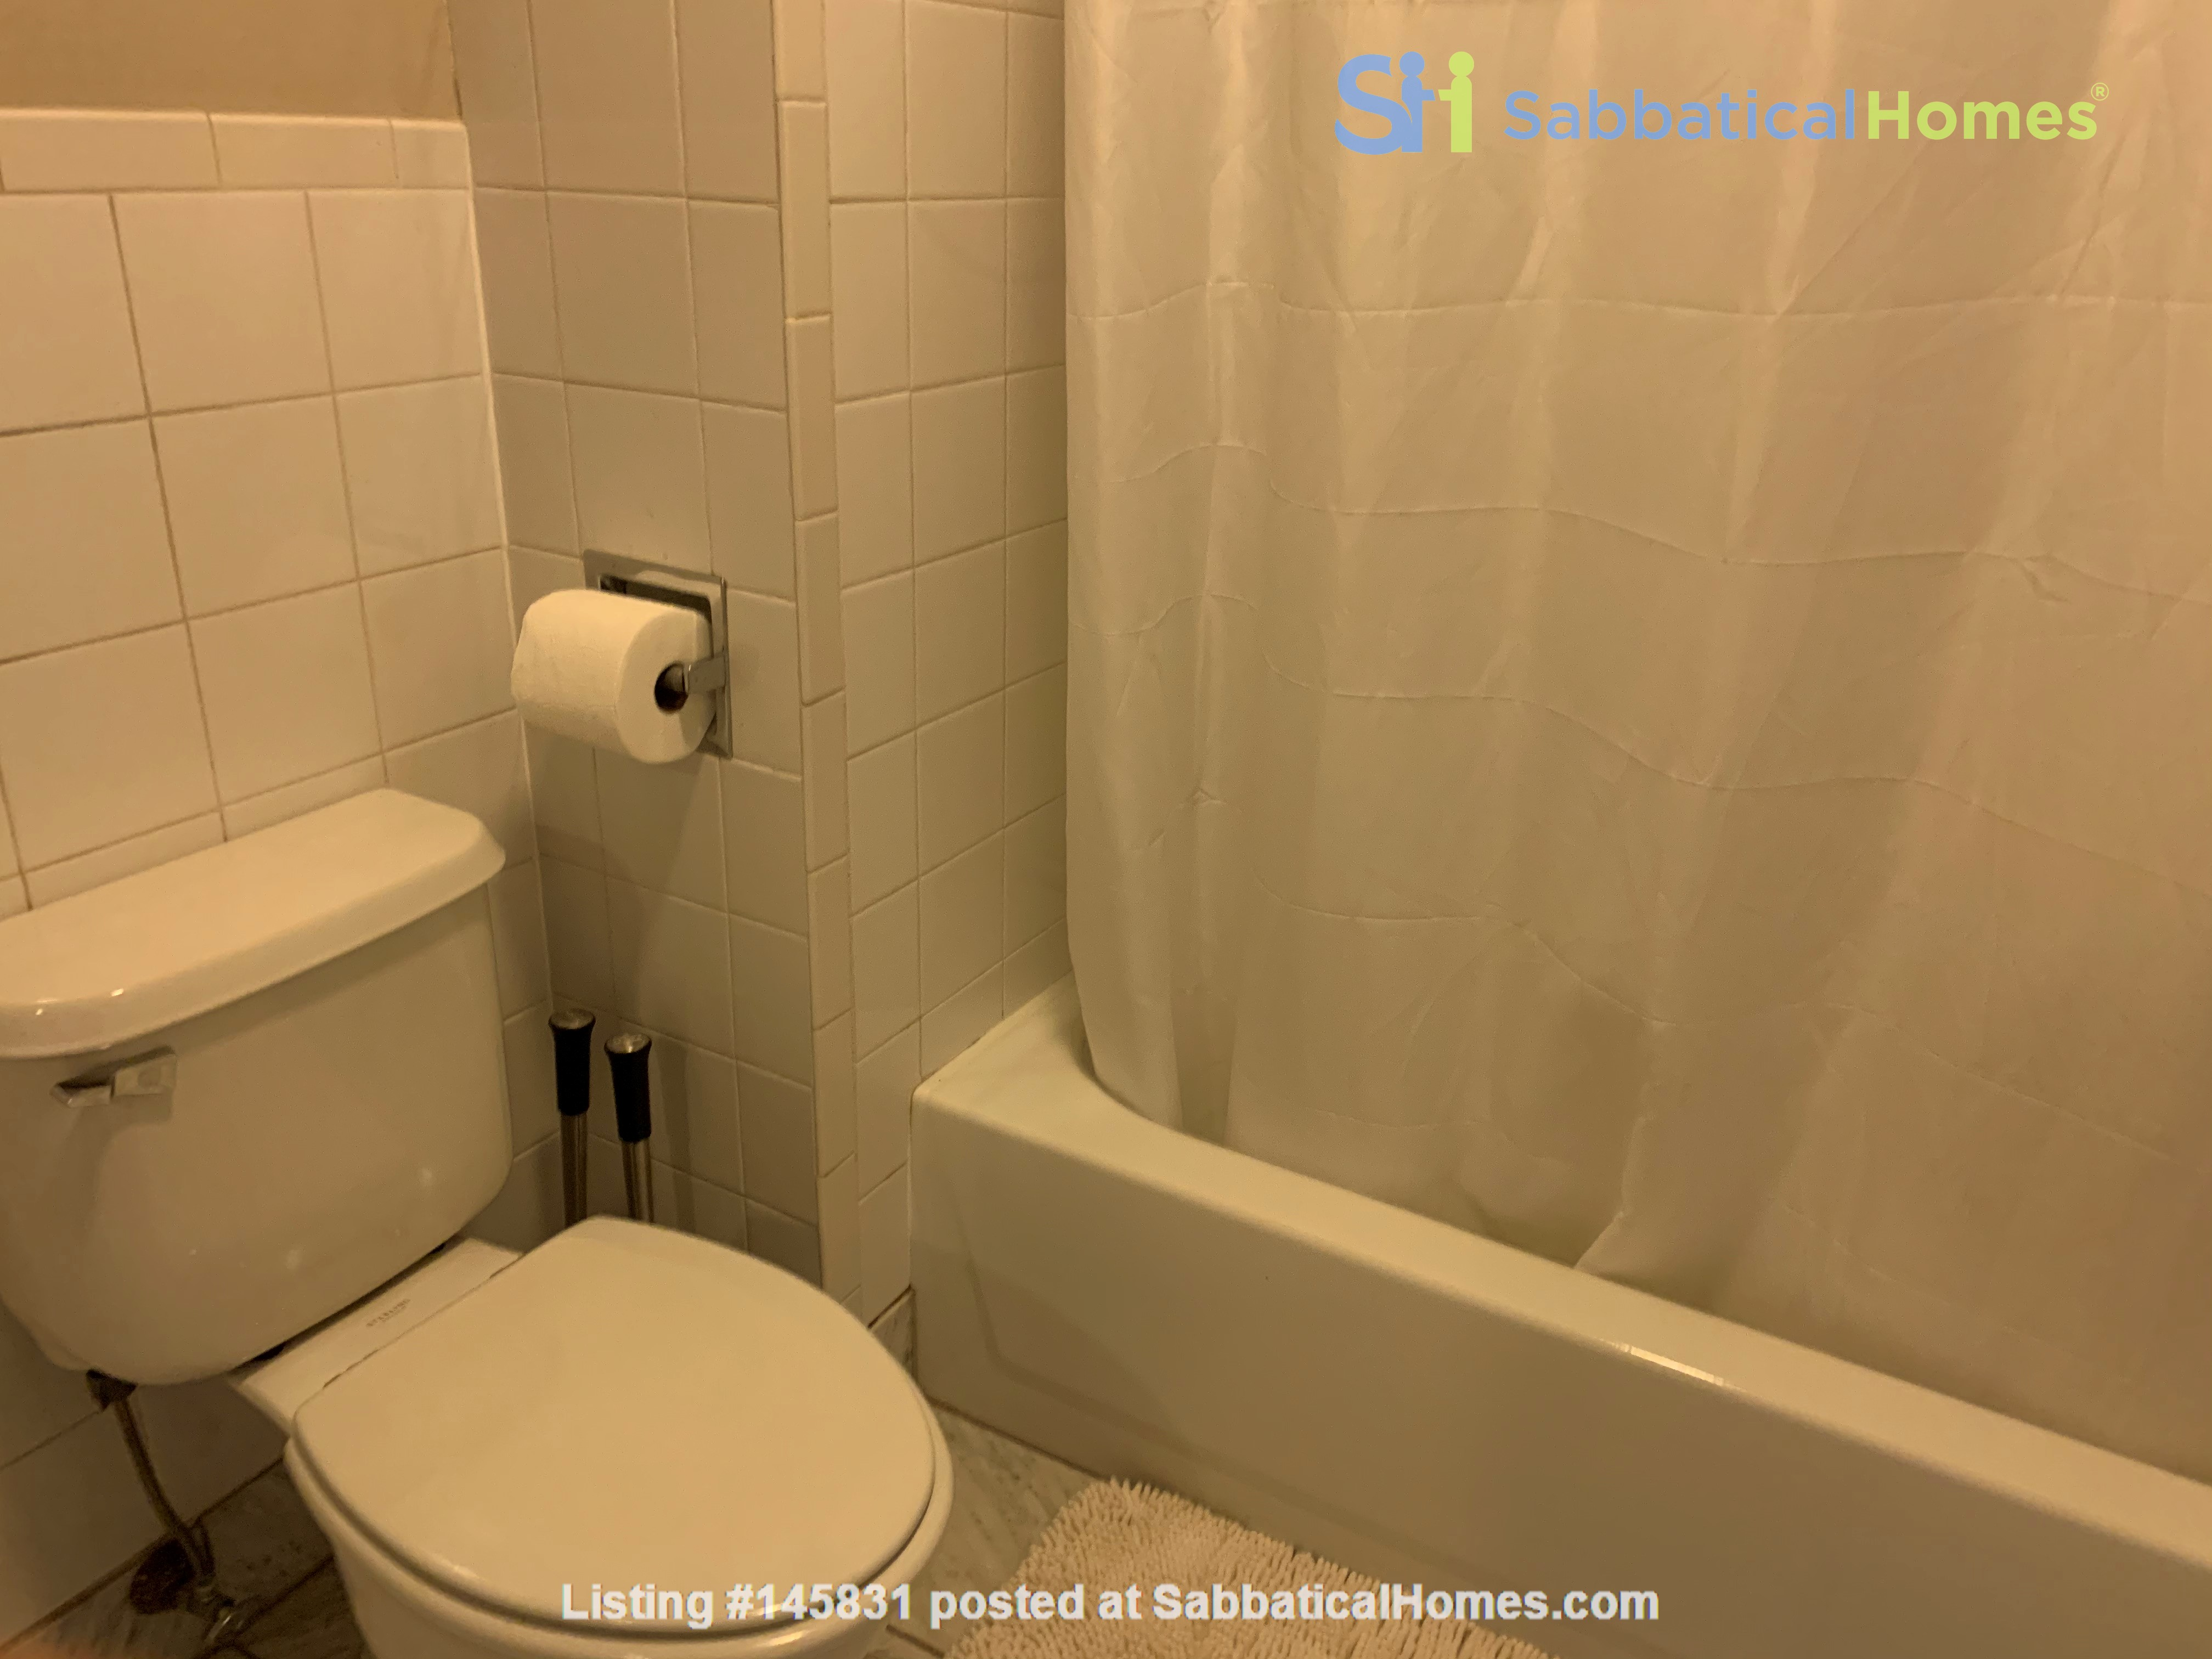 Harvard MIT HKS HBS! Fully furnished all utilities! Pets OK! No fee! Home Rental in Cambridge 9